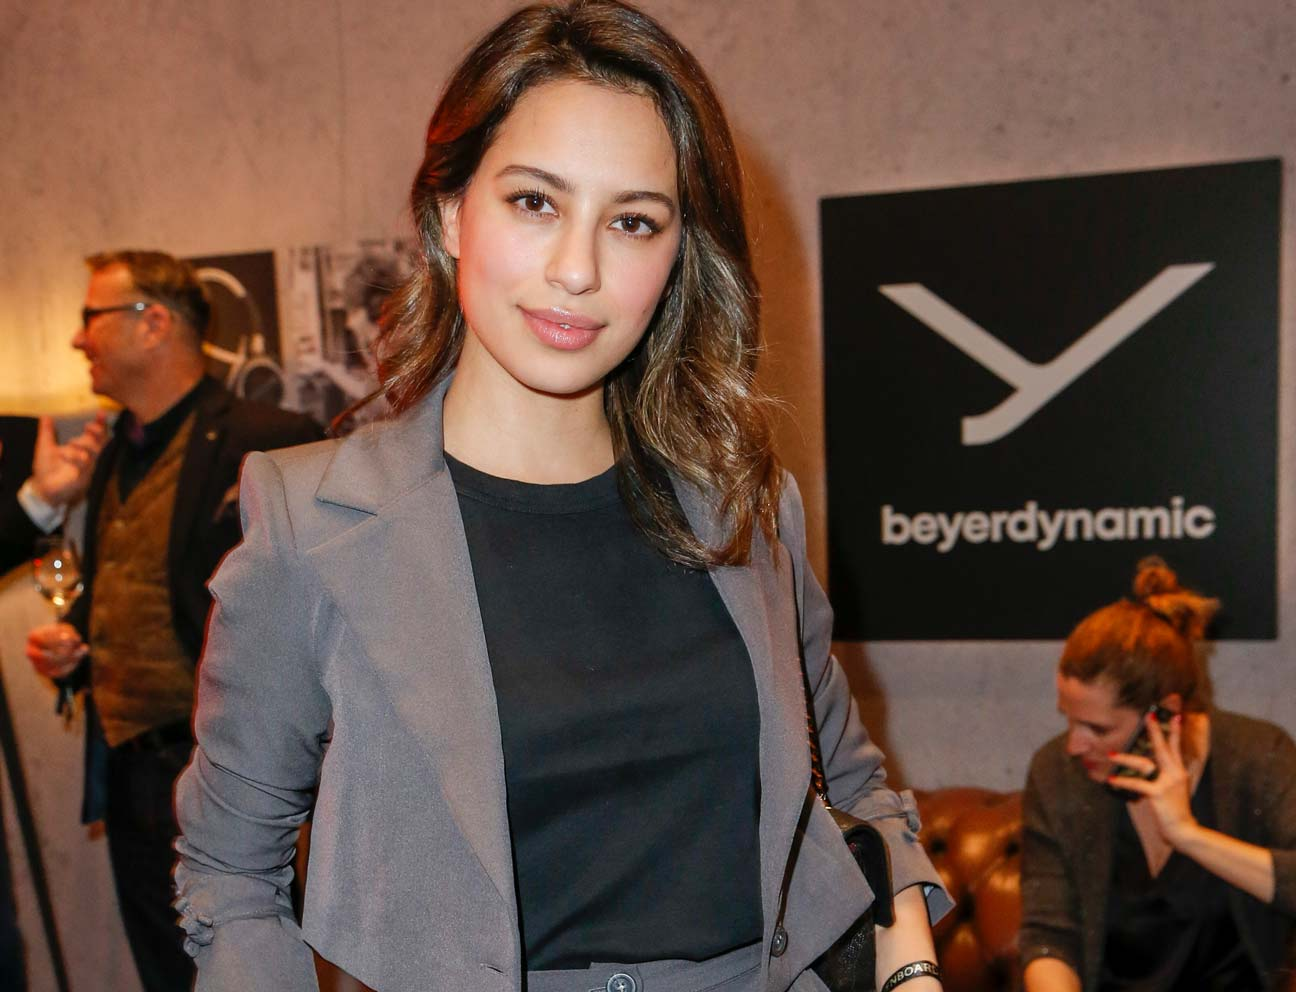 beyerdynamic Berlinale Lounge